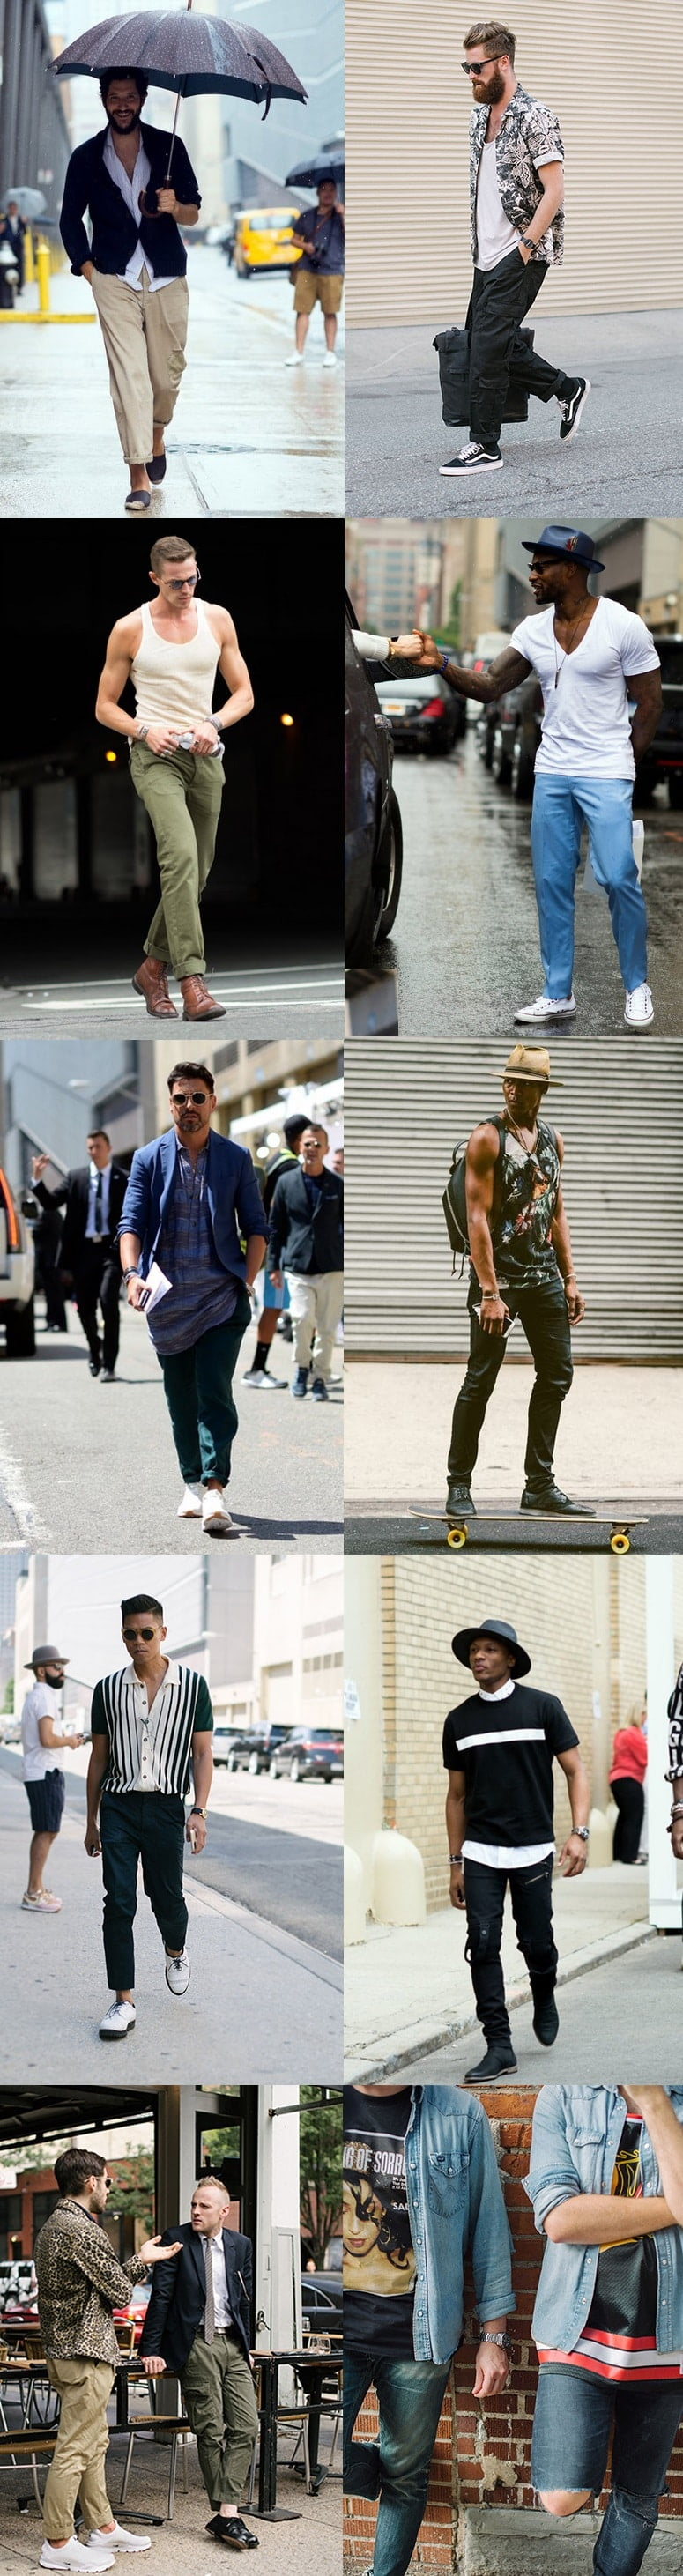 Street Style da semana de moda de NY - New York Men's Fashion Week Homens que se cuidam 3